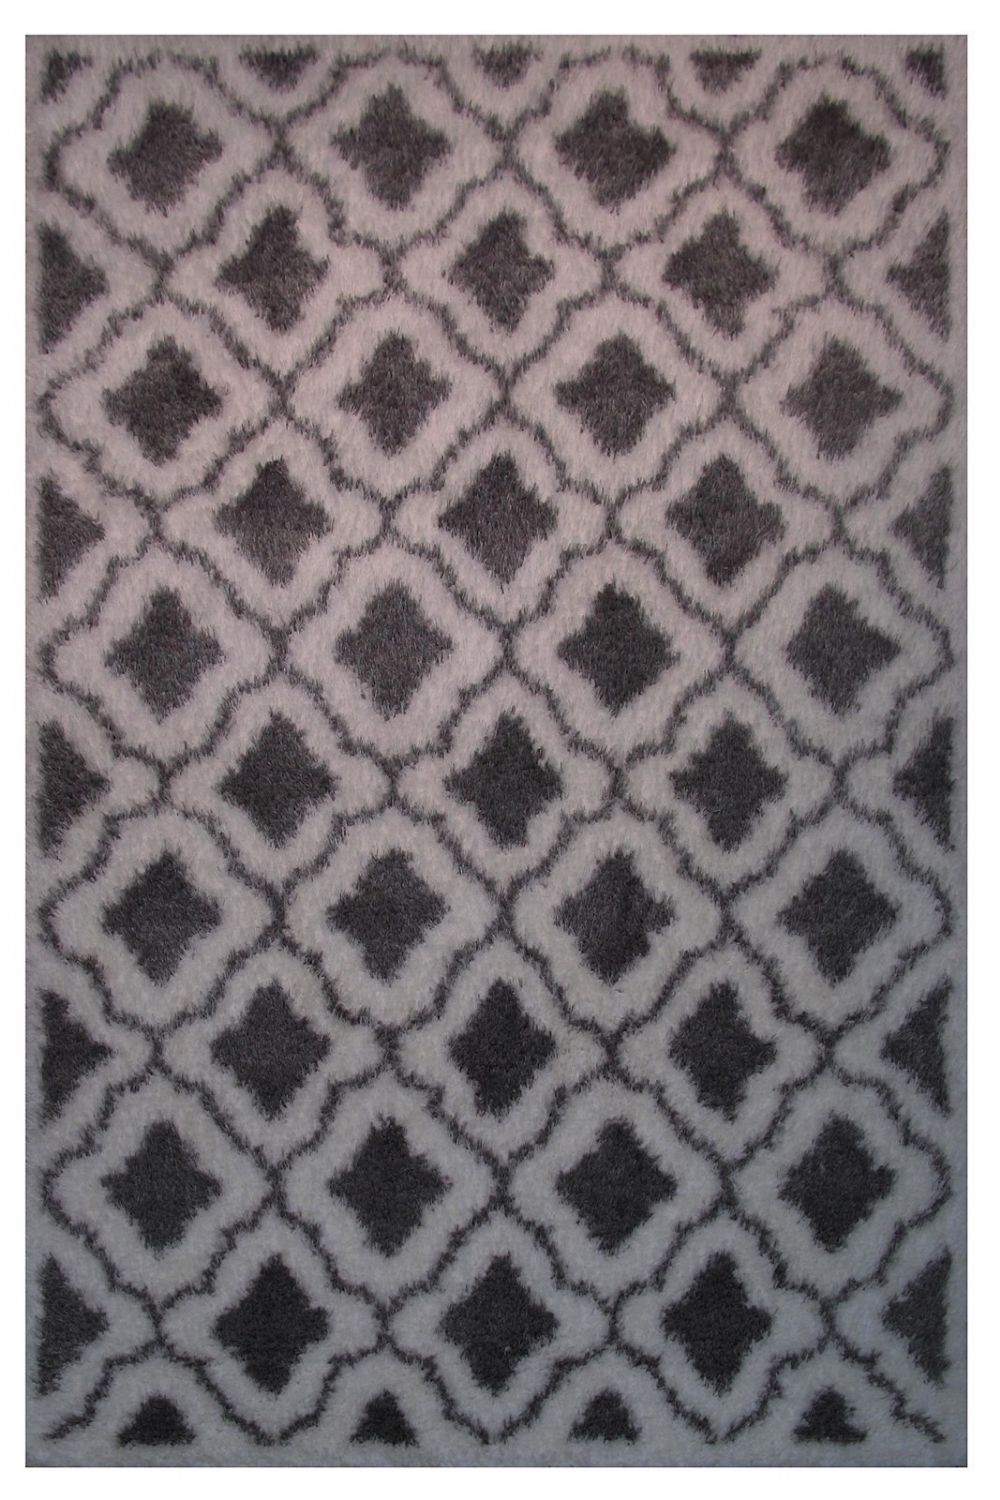 la rugs touch plush area rug collection